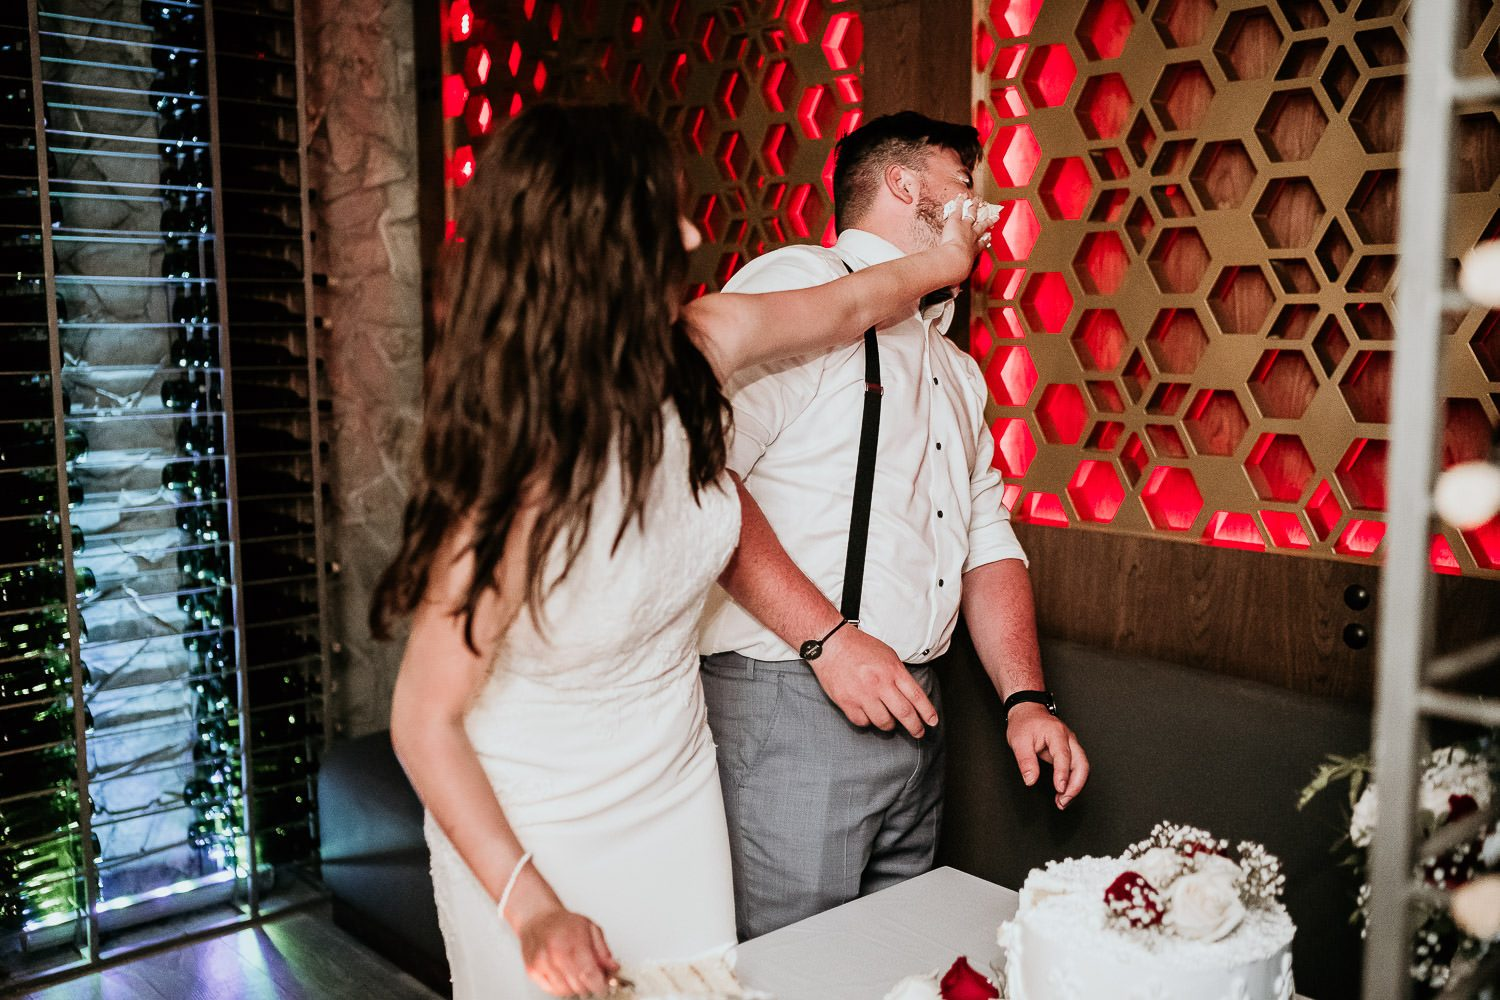 bride putting cake on grooms face in cancun